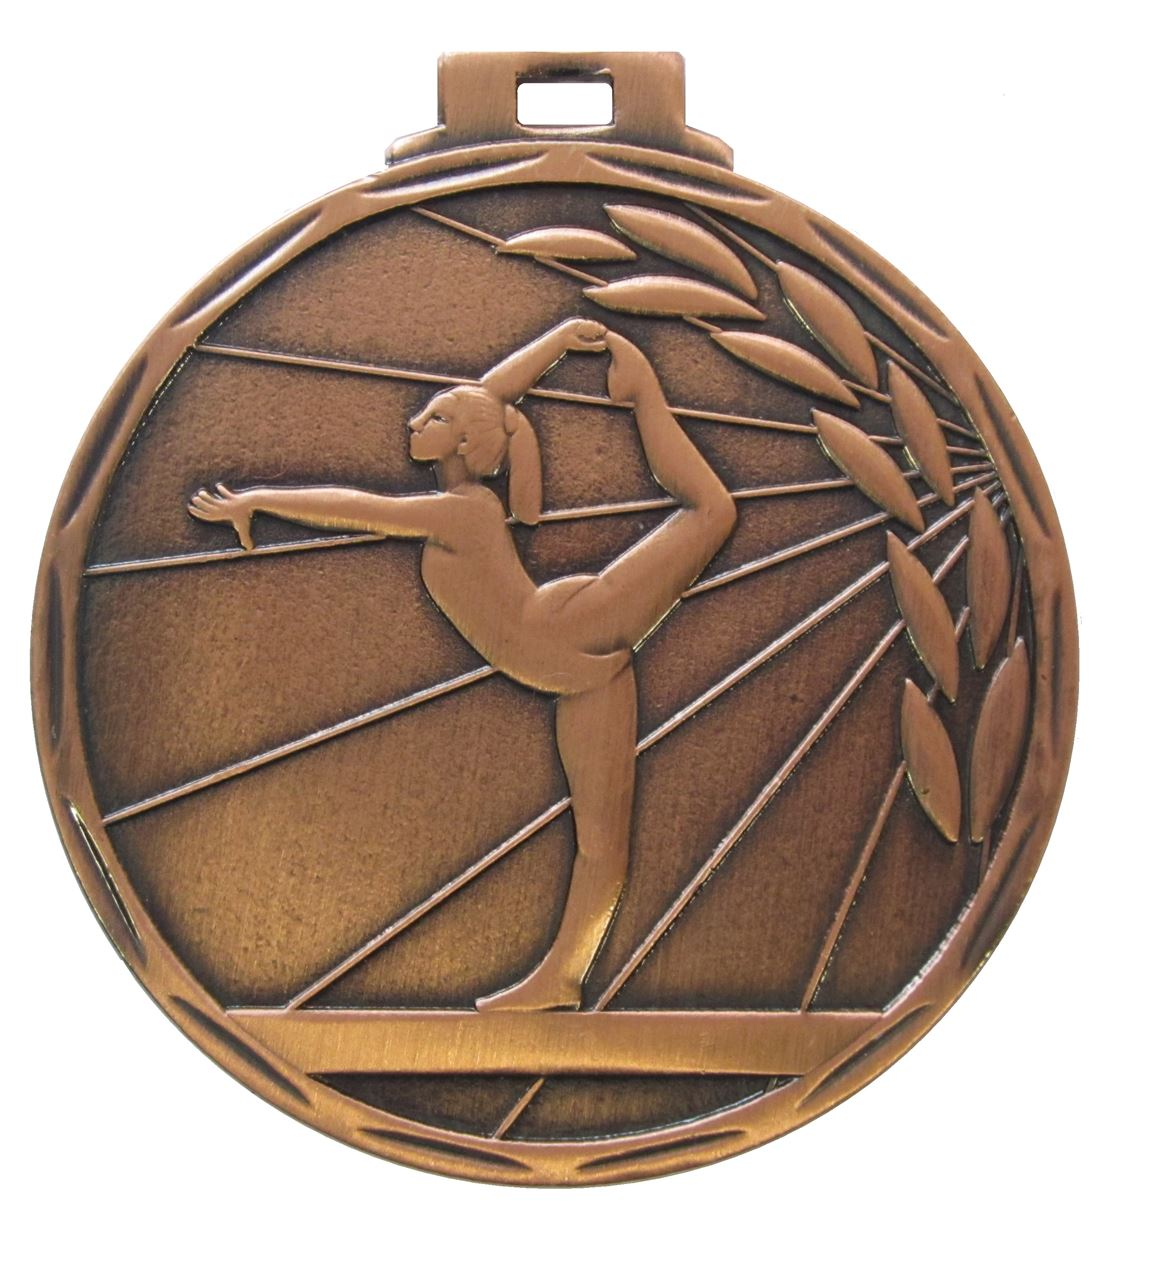 Copper Value Gymnastics Ray Medal (size: 50mm) - 7901